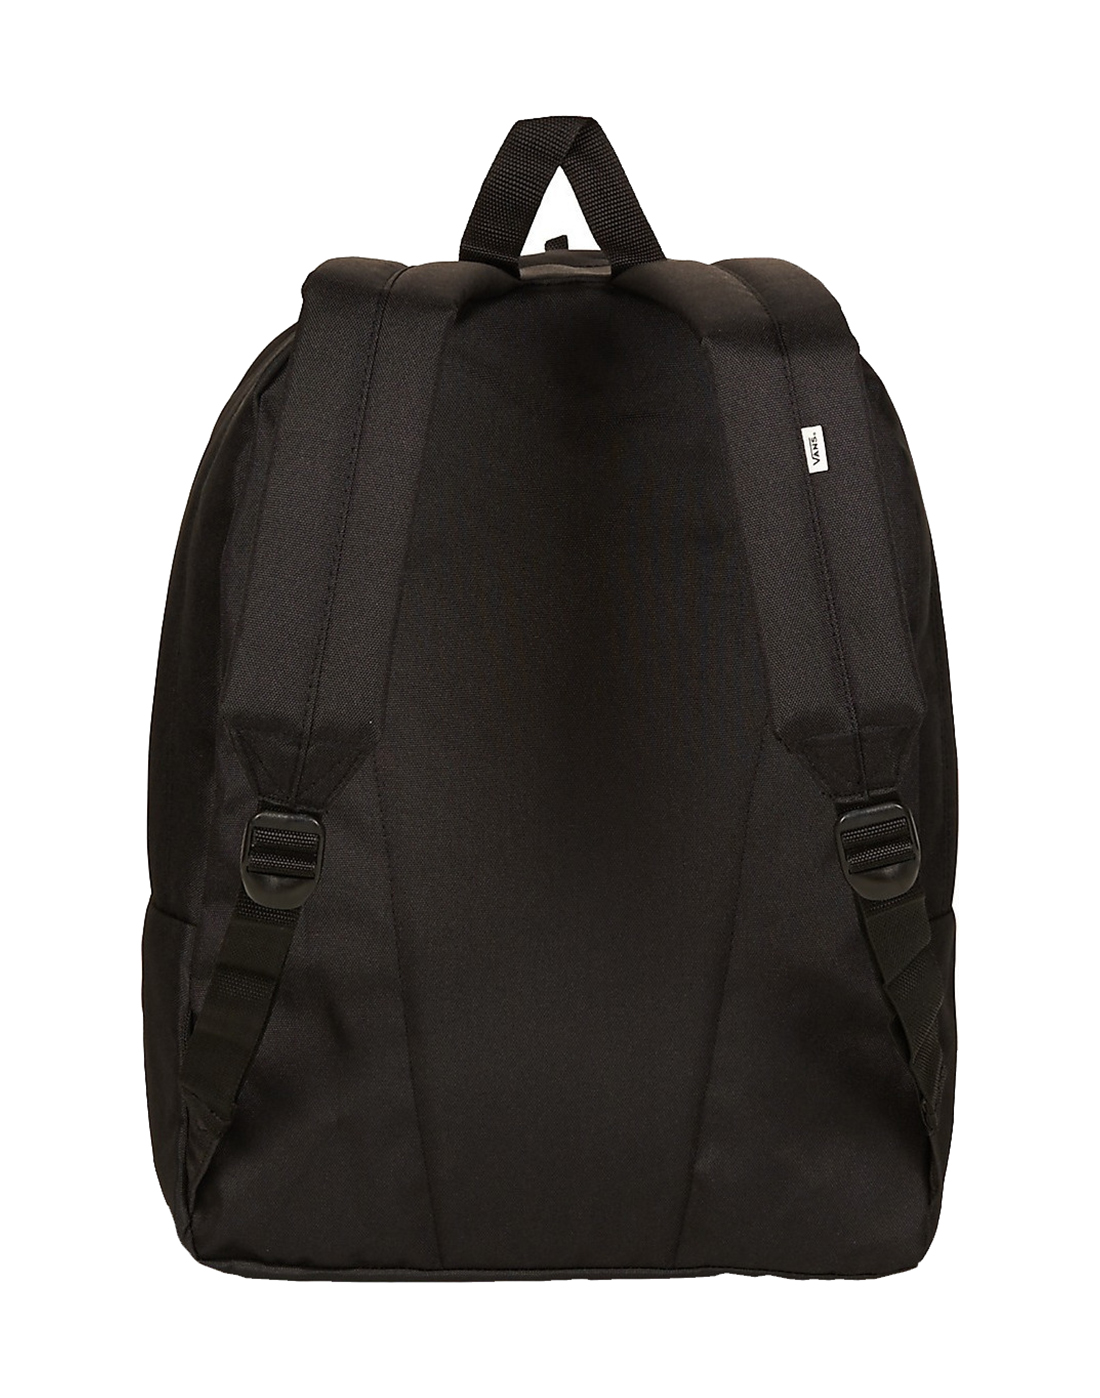 Realm Marvel Backpack · Realm Marvel Backpack 71a6f8bc21e8b